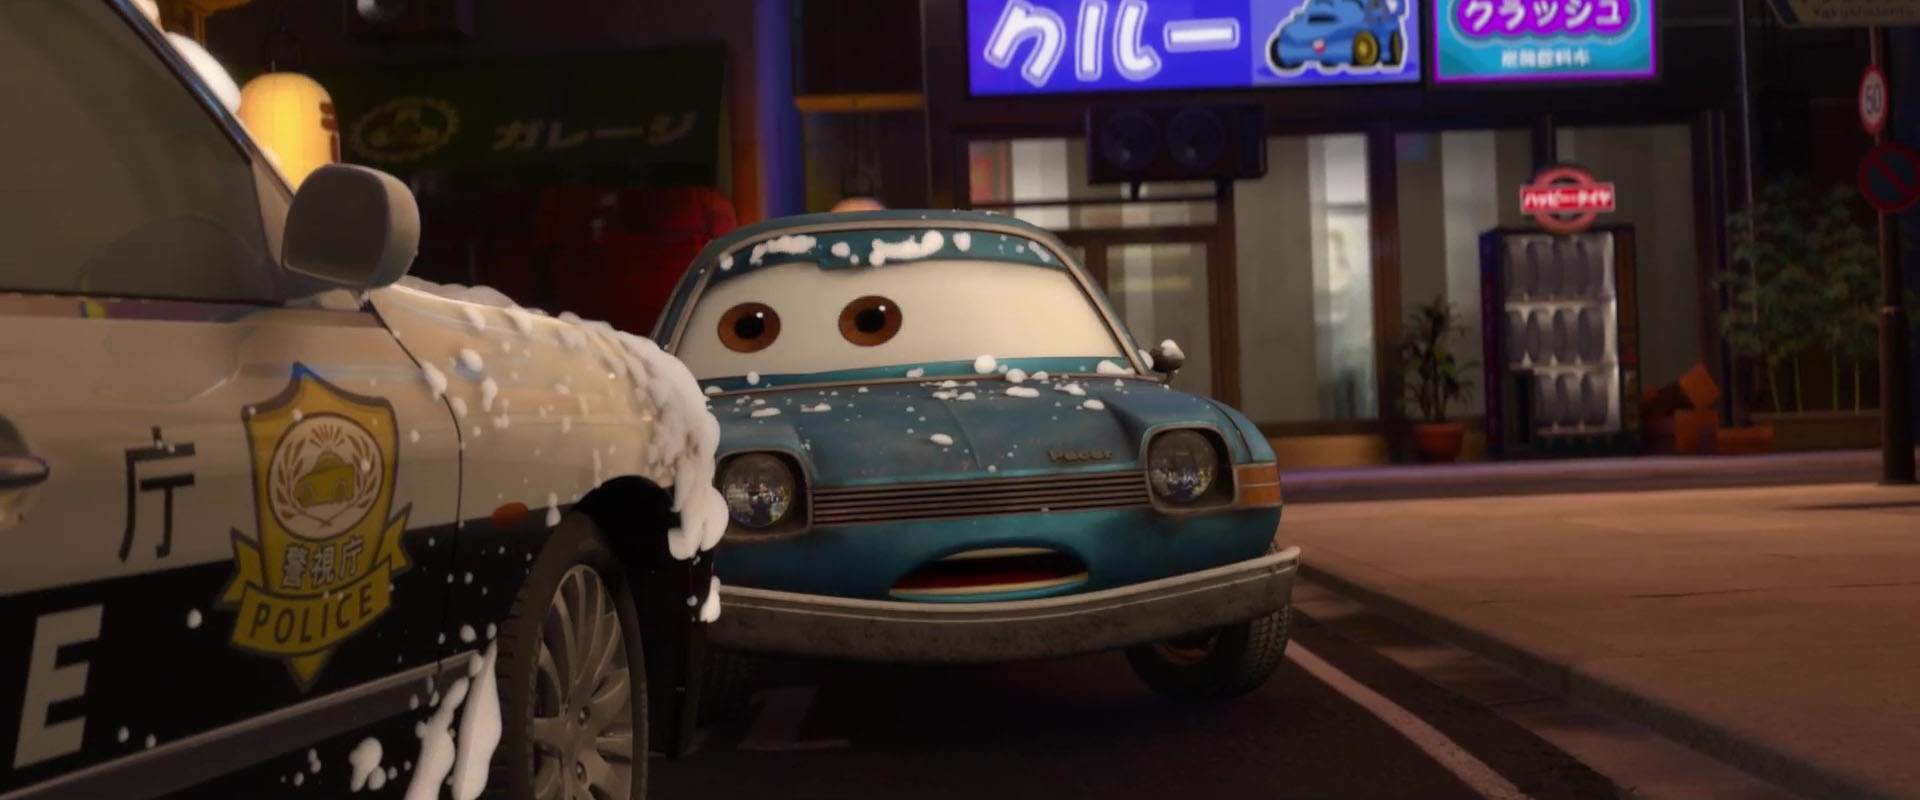 petey-pacer-personnage-cars-2-02